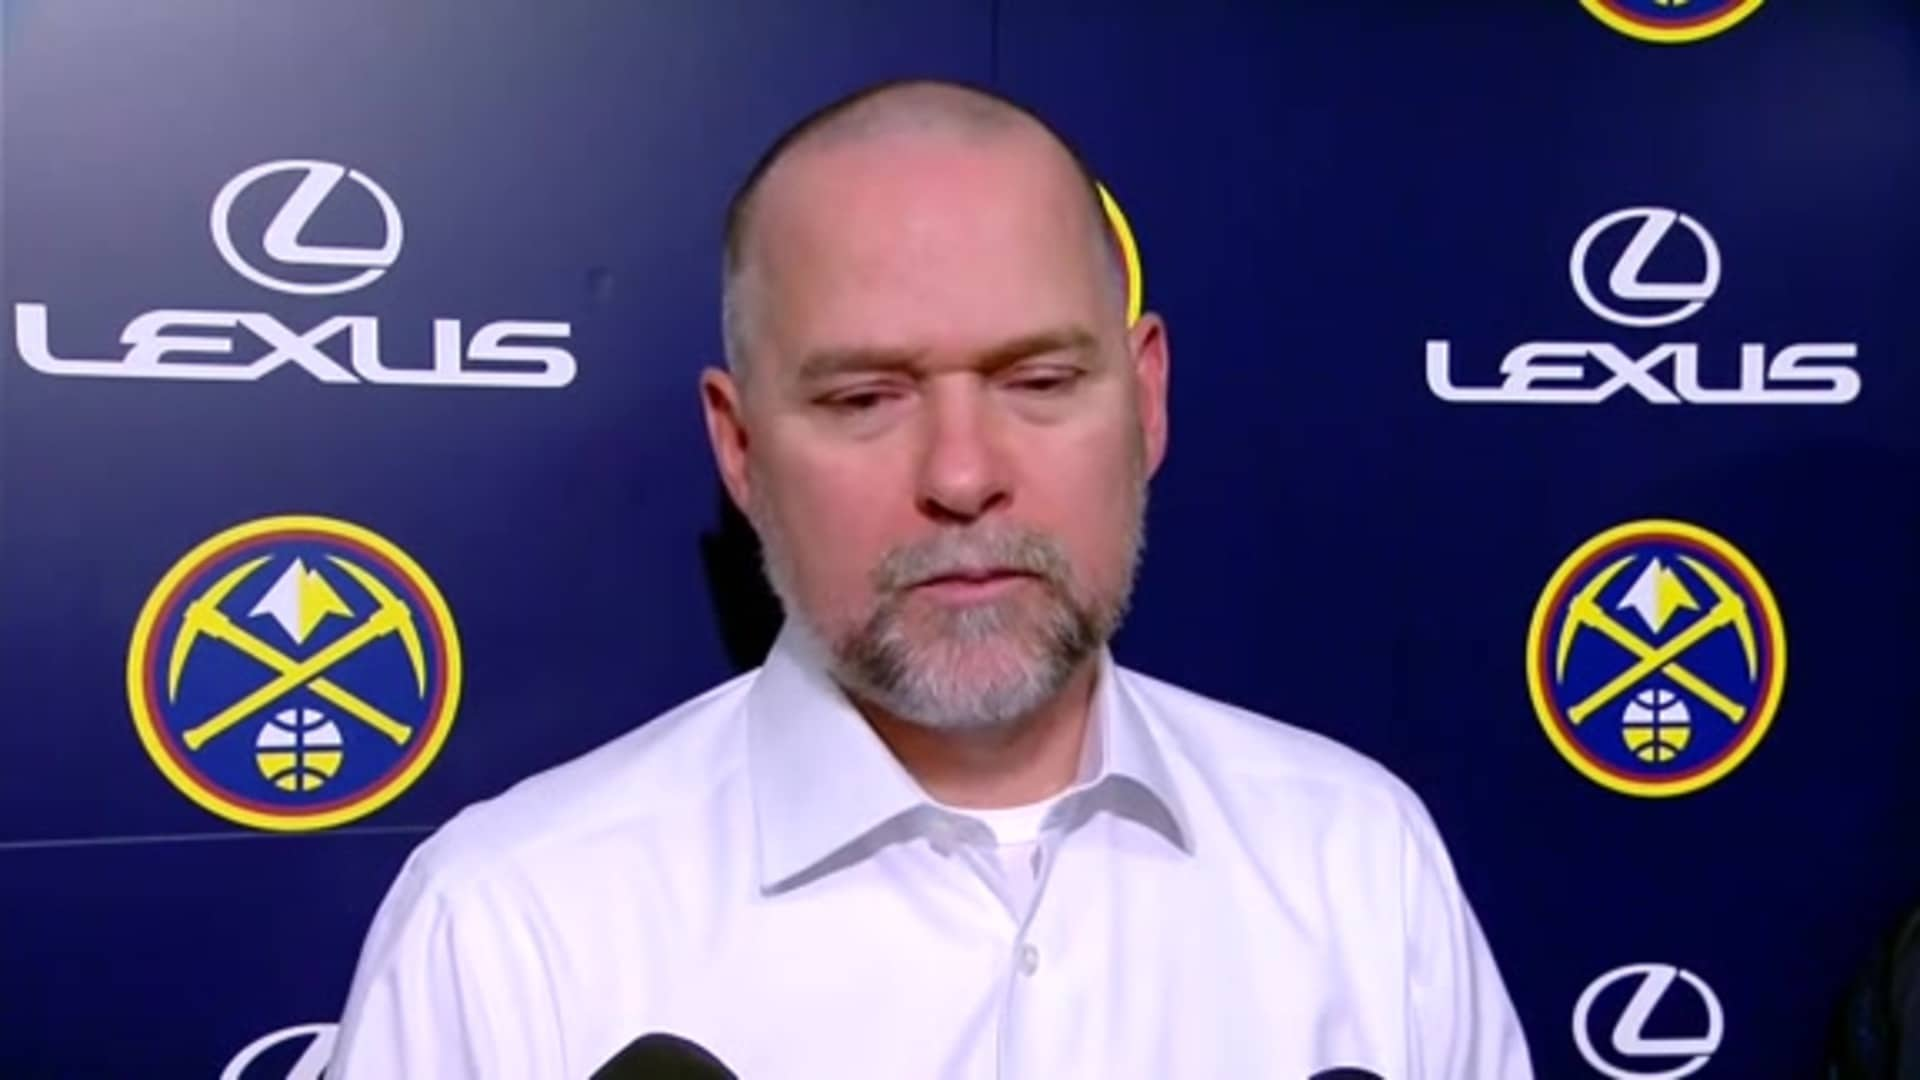 Coach Malone after Lakers loss: We just didn't make shots